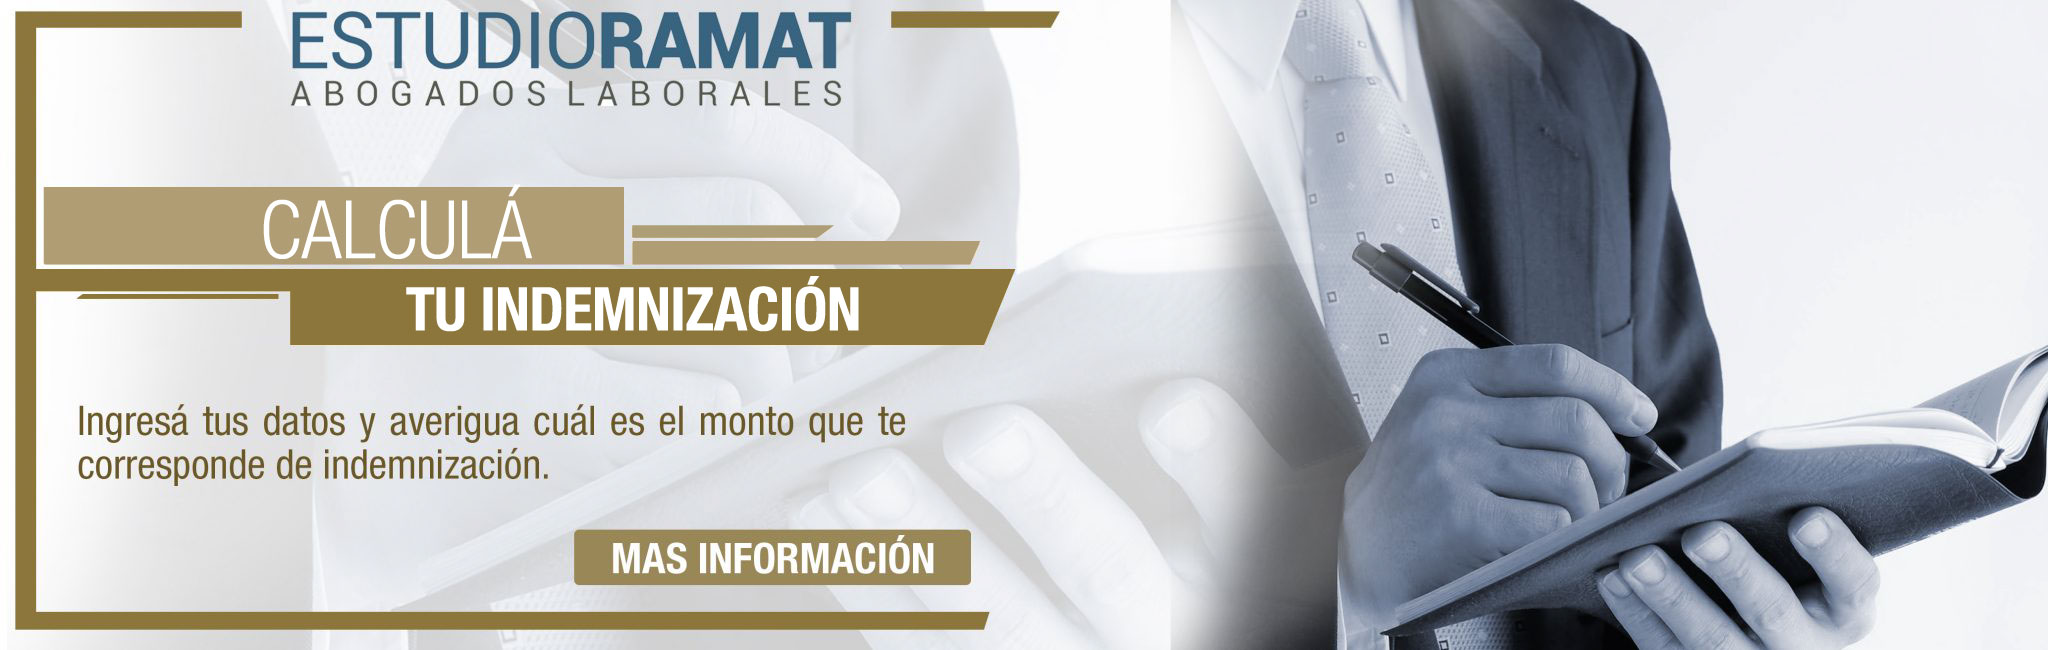 abogados laborales indemnizacion